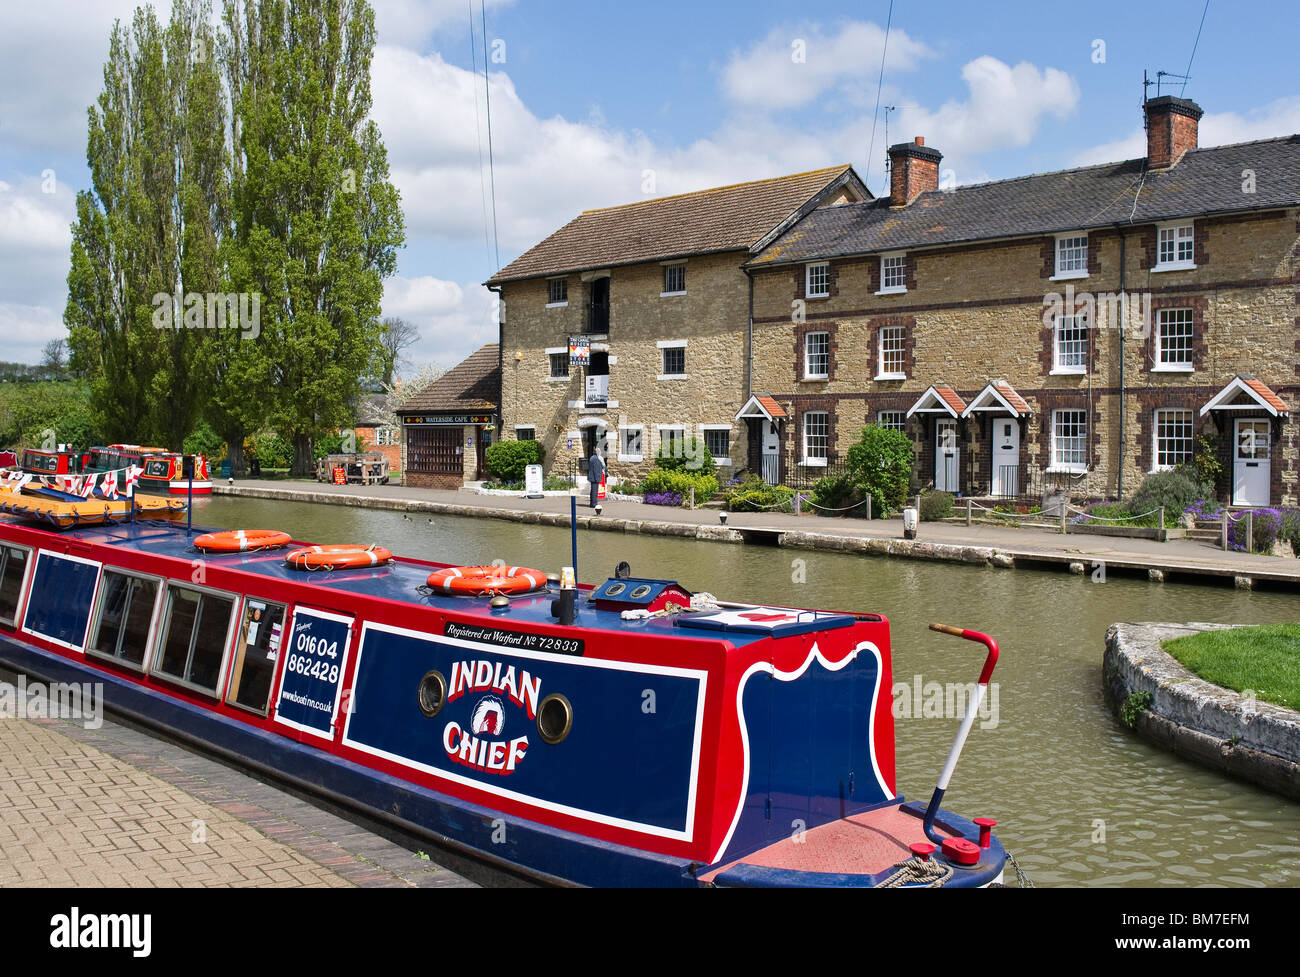 'Indian Chief' narrow boat on the 'Grand Union' canal at Stoke Bruerne Northampton UK - Stock Image